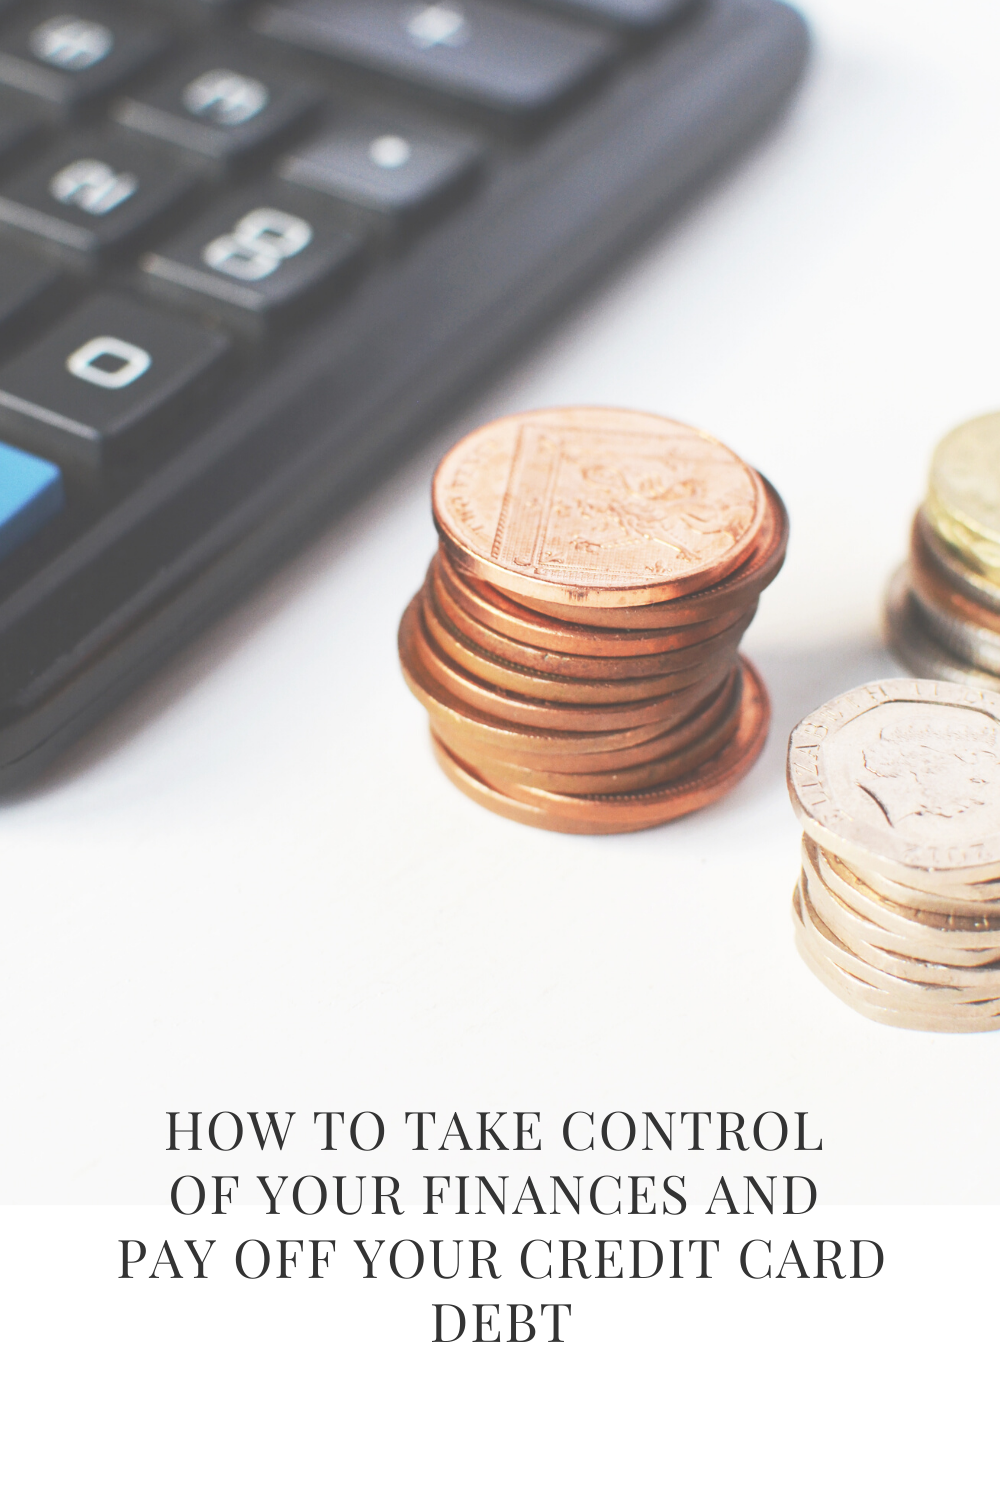 How to Take Control Of Your Finances And Pay Off Your Credit Card Debt